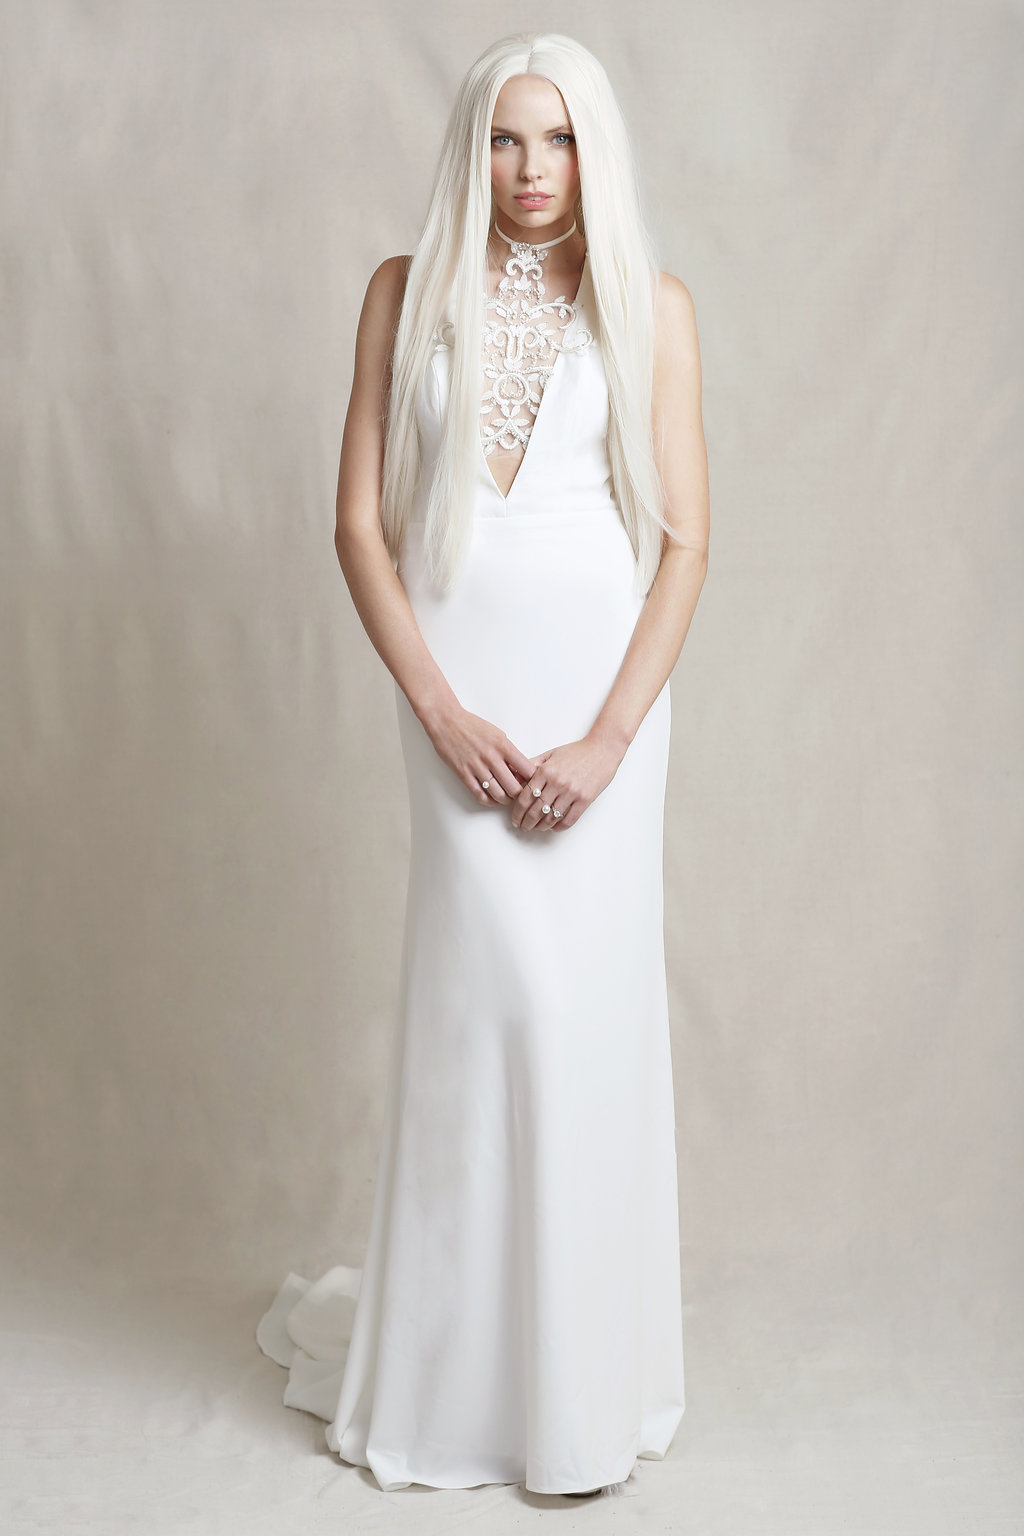 MODERN BOHEMIAN WEDDING DRESSES SYDNEY